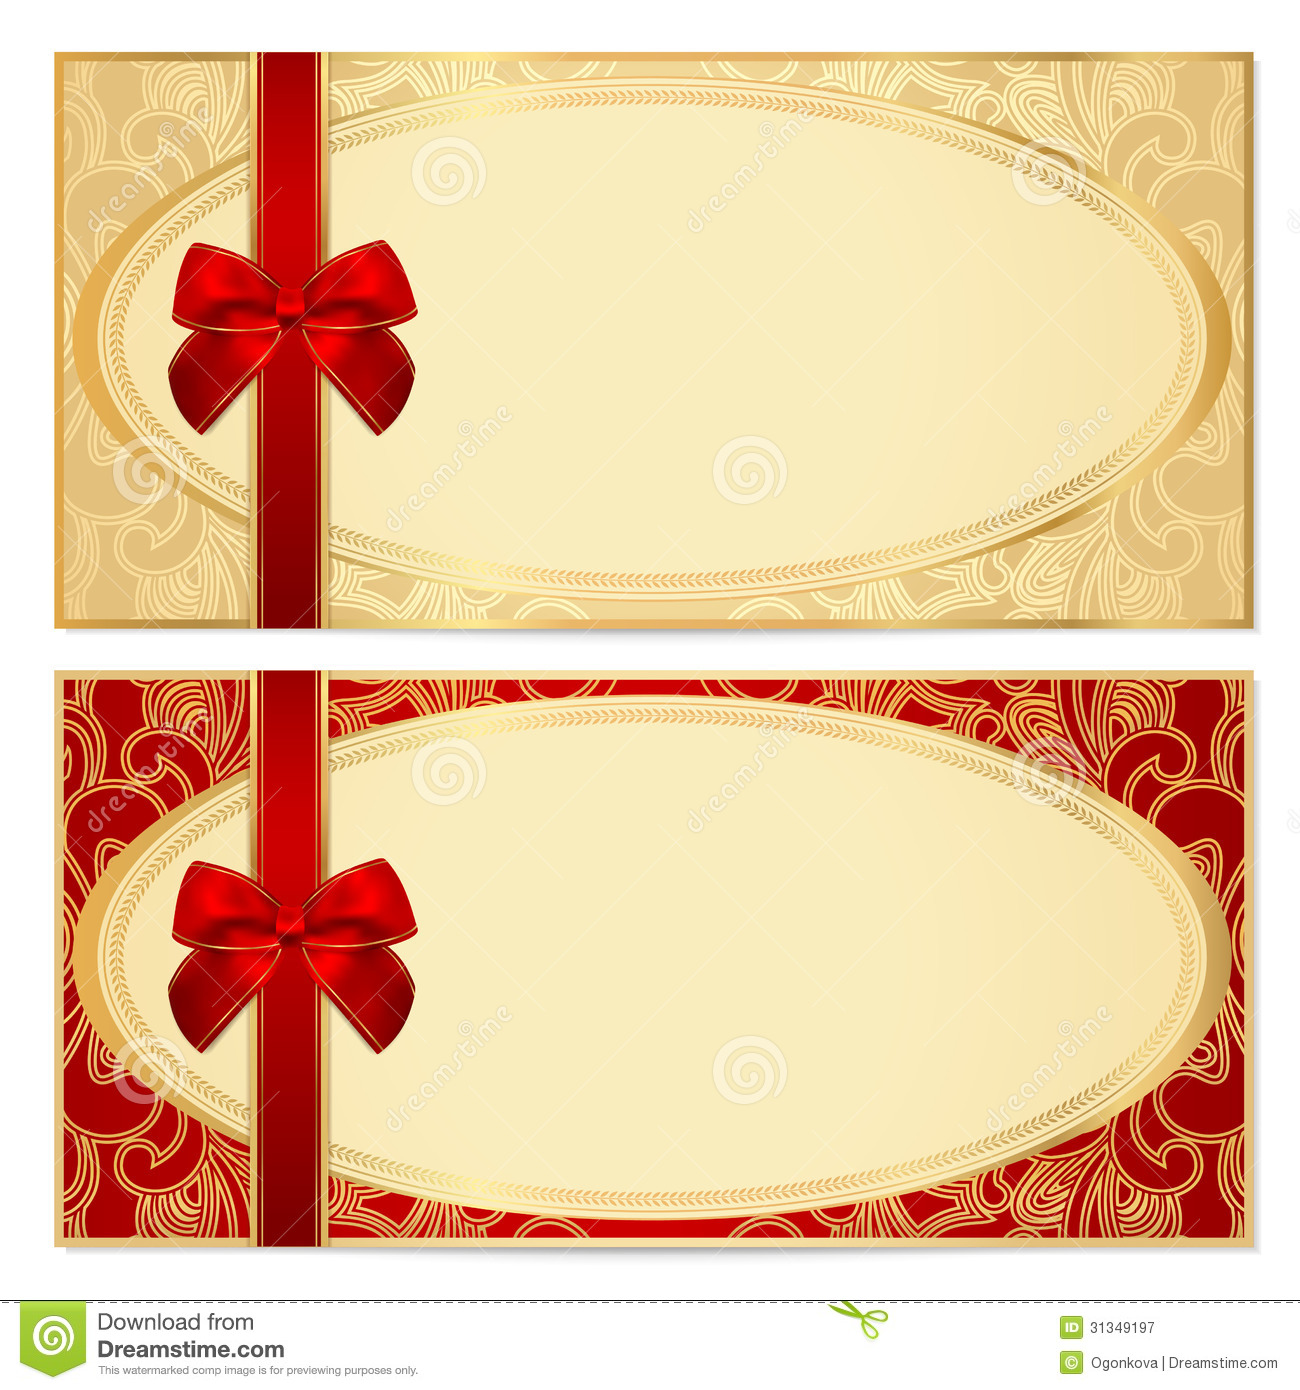 Doc.#736552: Gift Certificate Template Free Download – 78 ideas ...